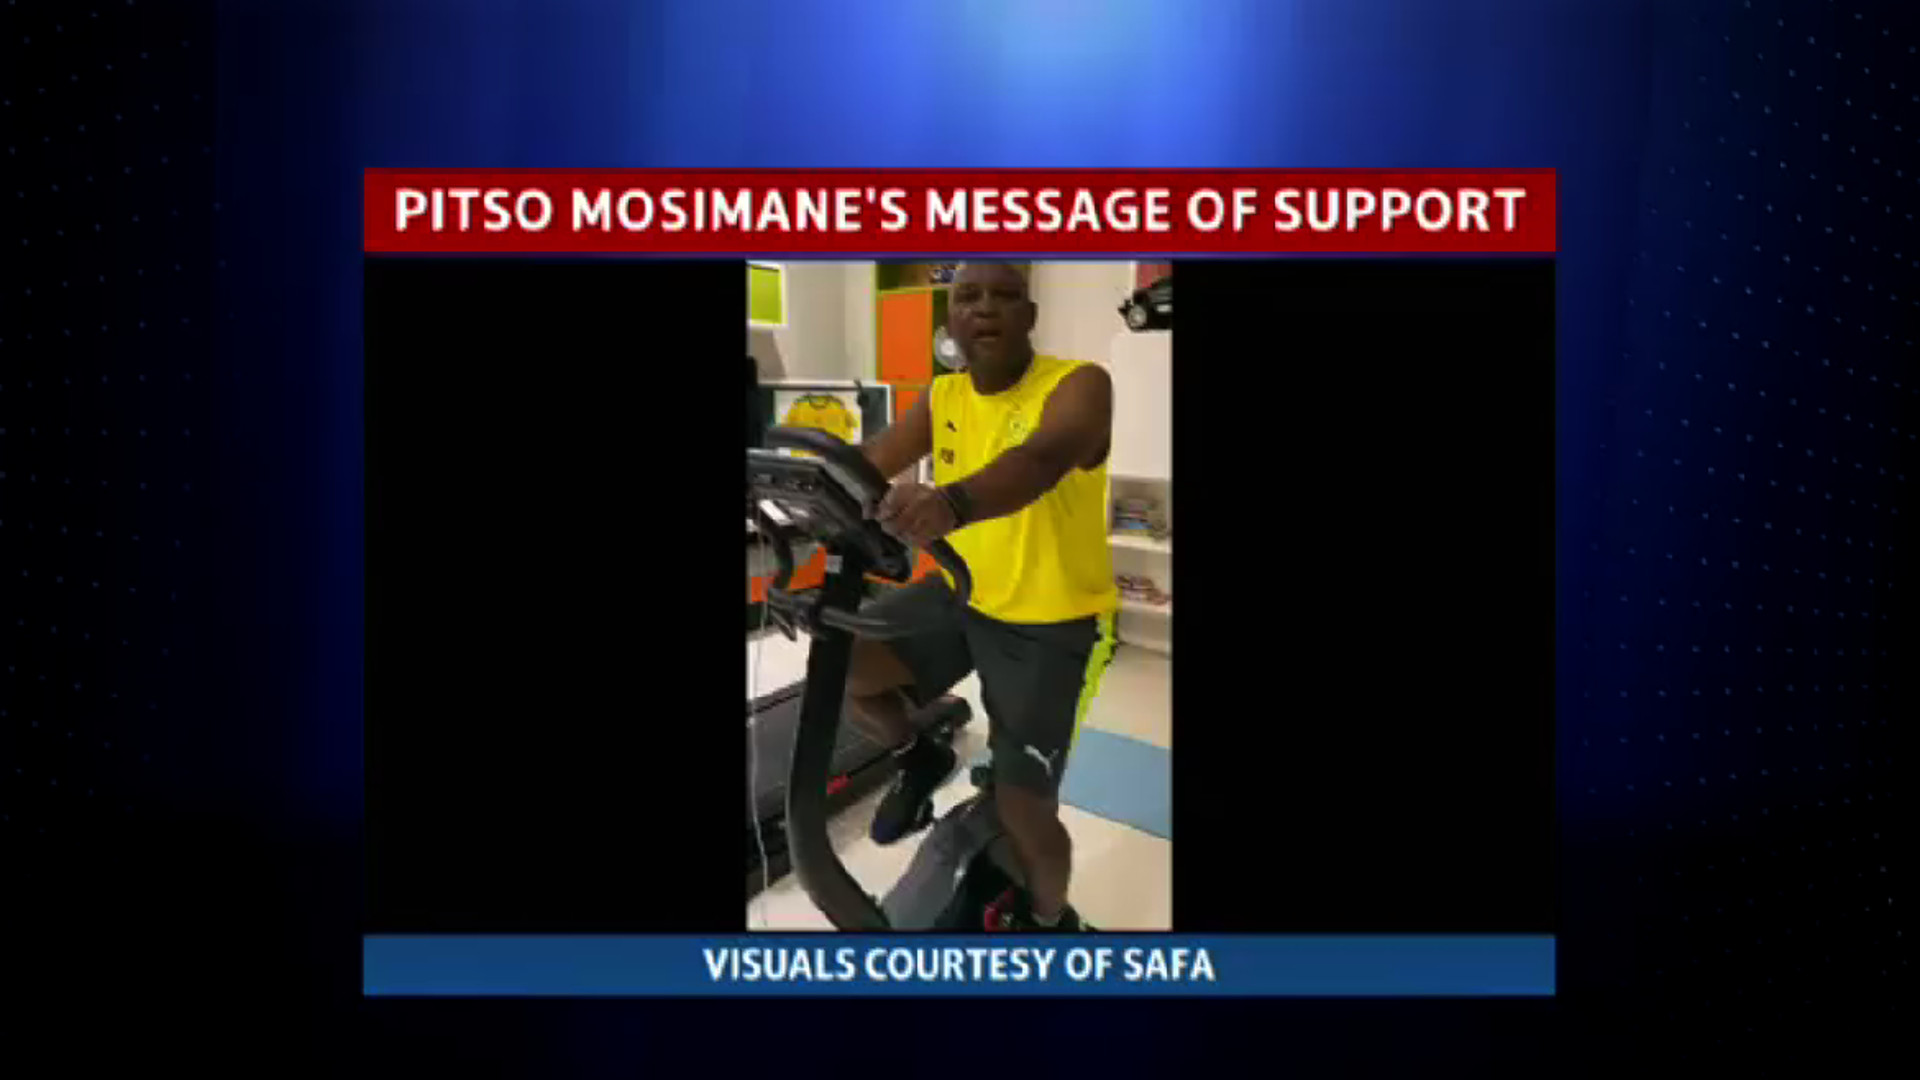 Pitso Mosimane's message of support